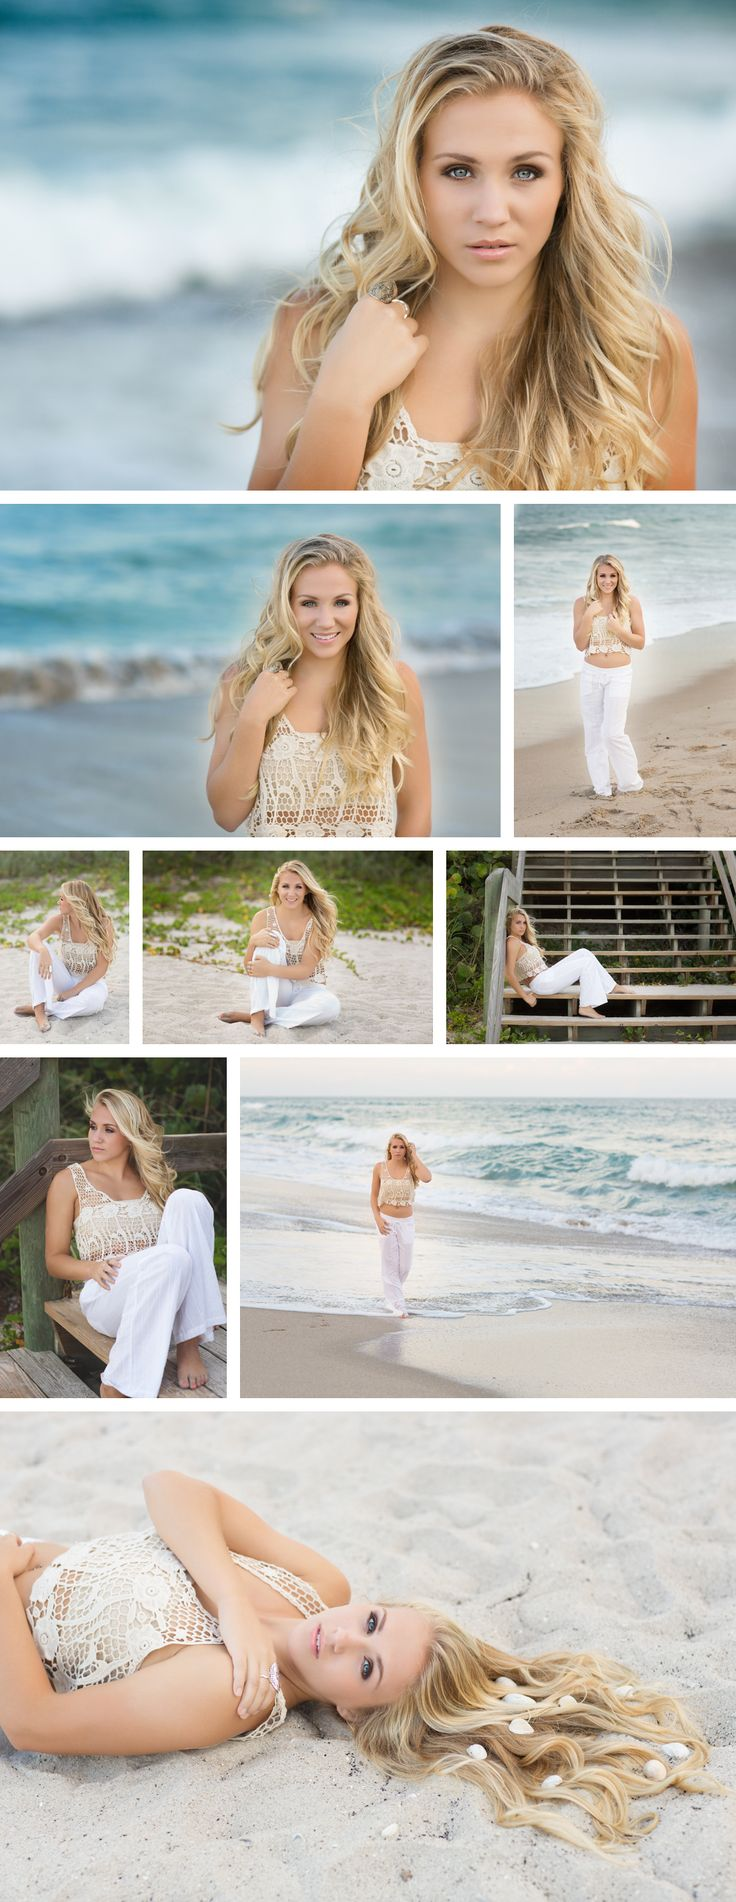 Alexandra Feild Photography Senior Portraits Viera, Melbourne, Lake Nona, Winter Park, Orlando Florida Senior photos at the beach, beach portrait session posing, girl